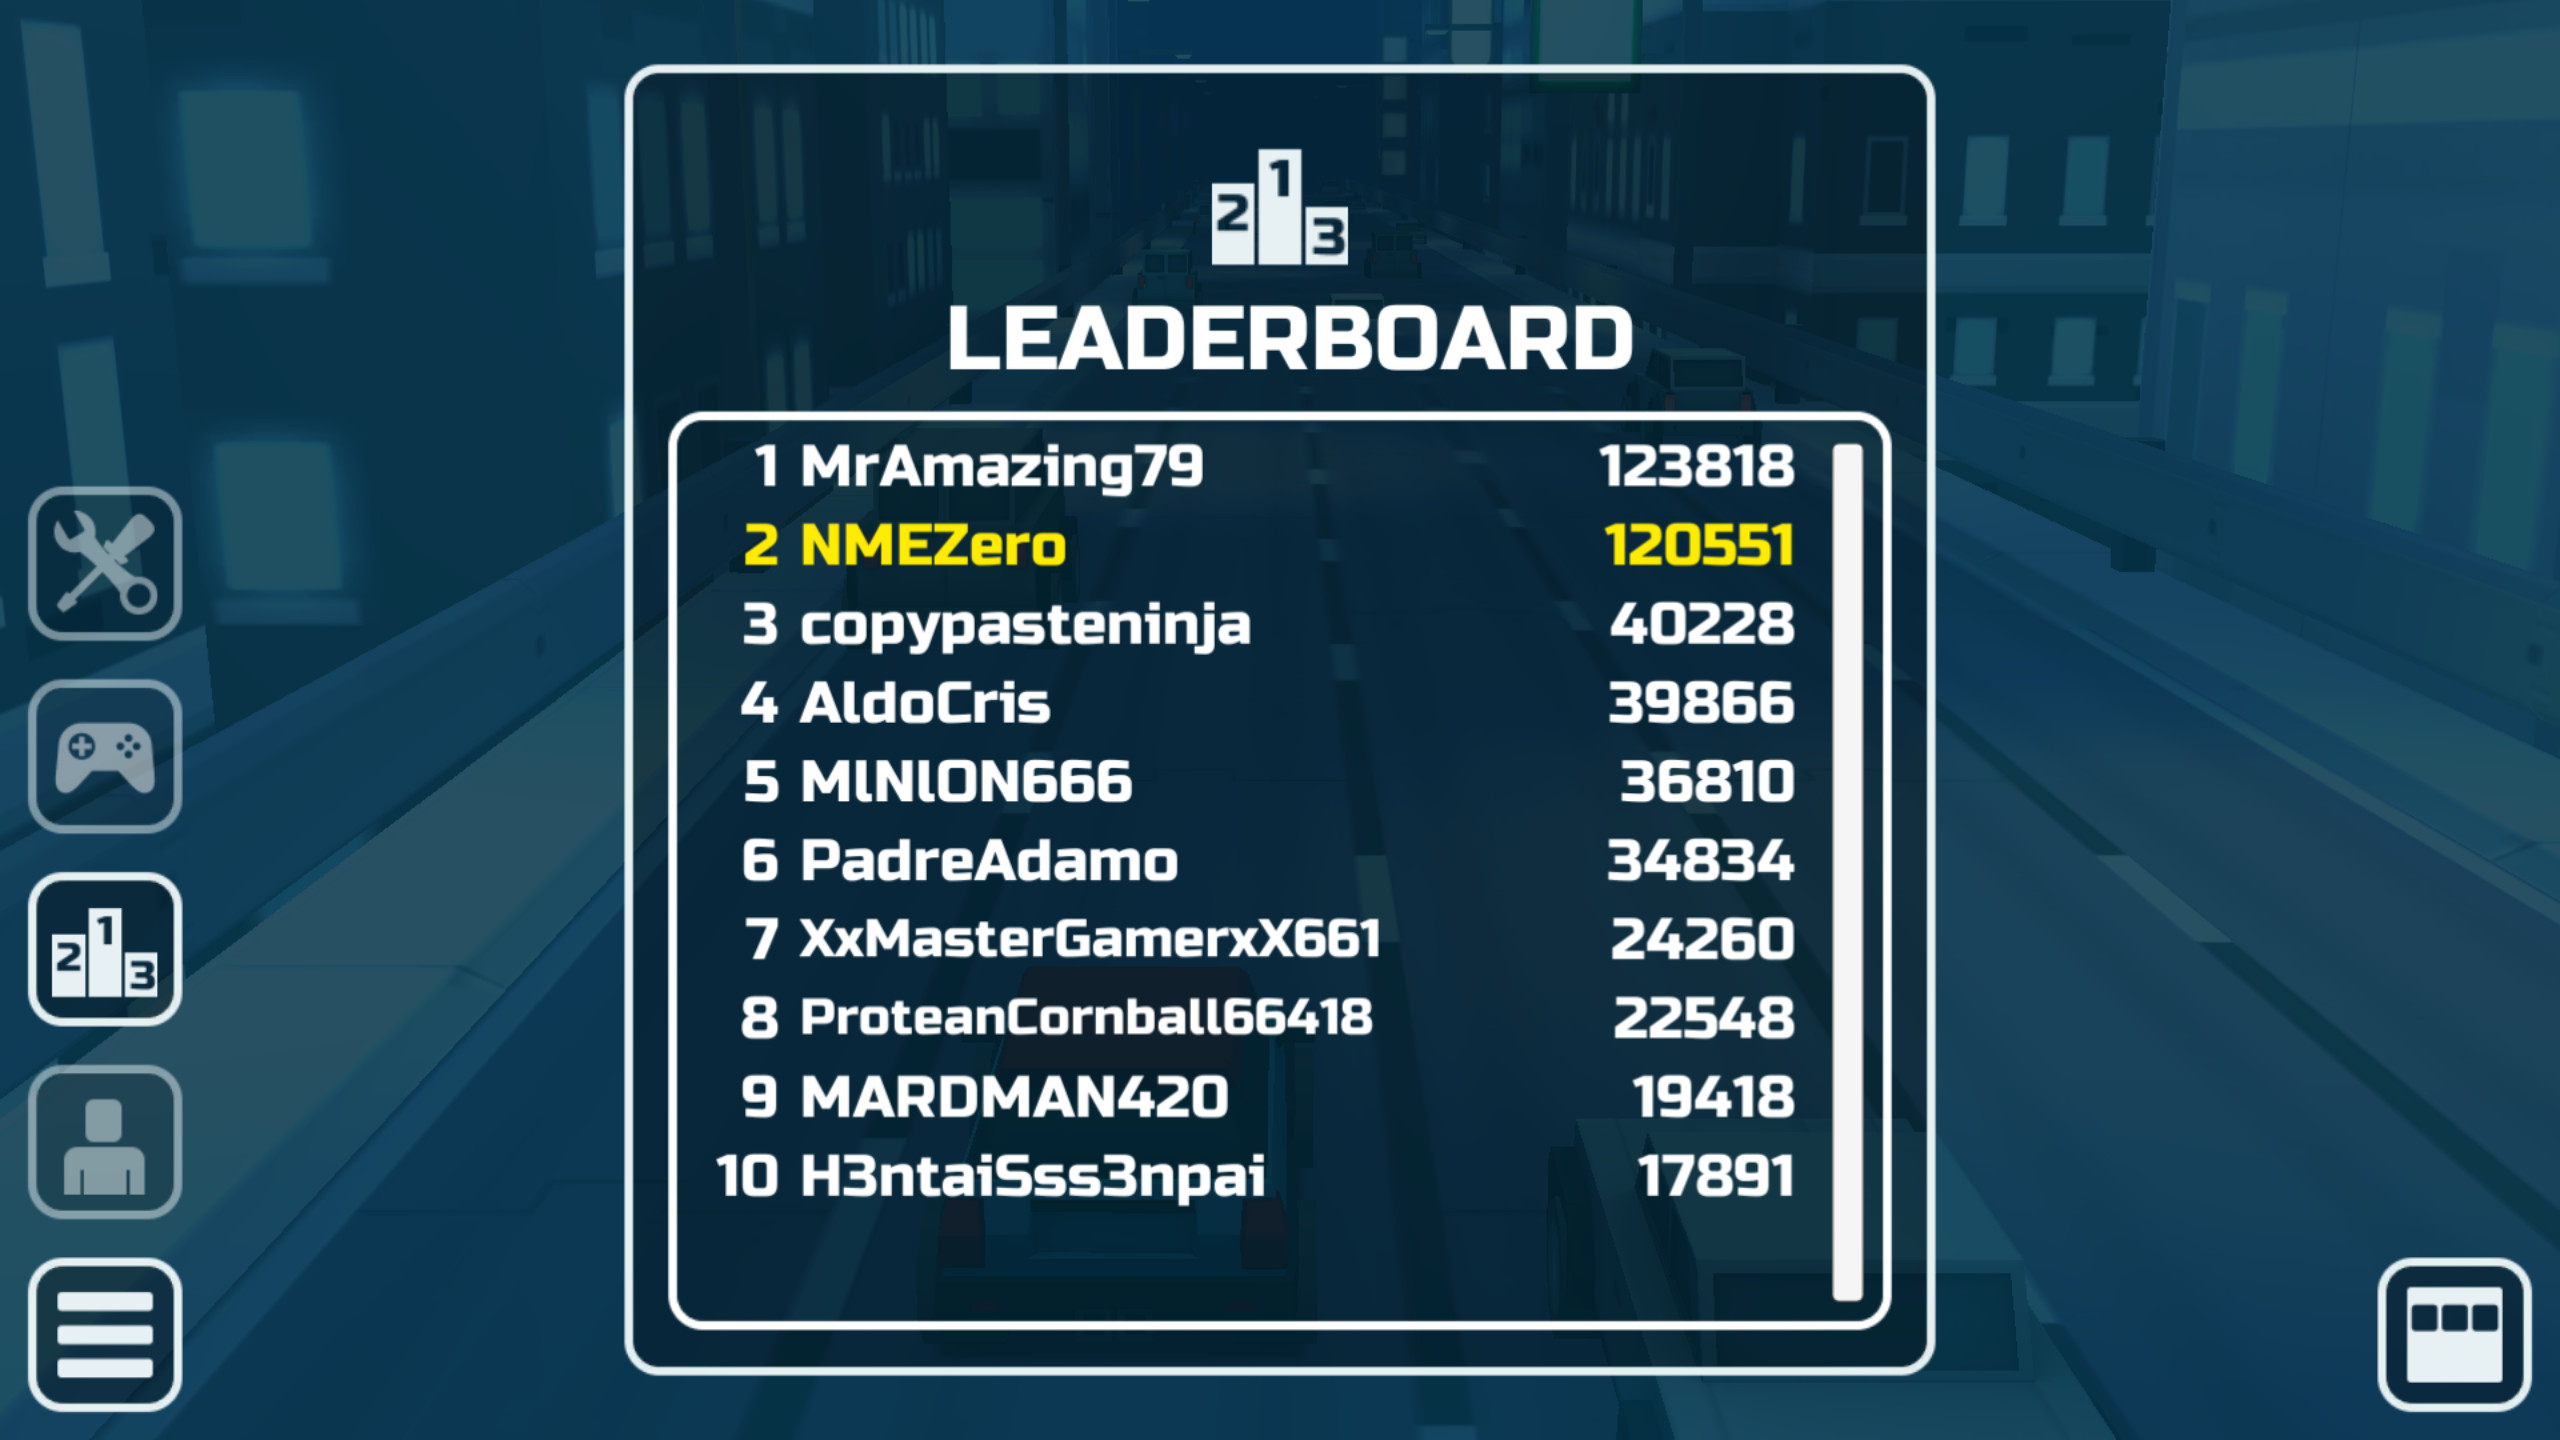 Leaderboard screen and icon